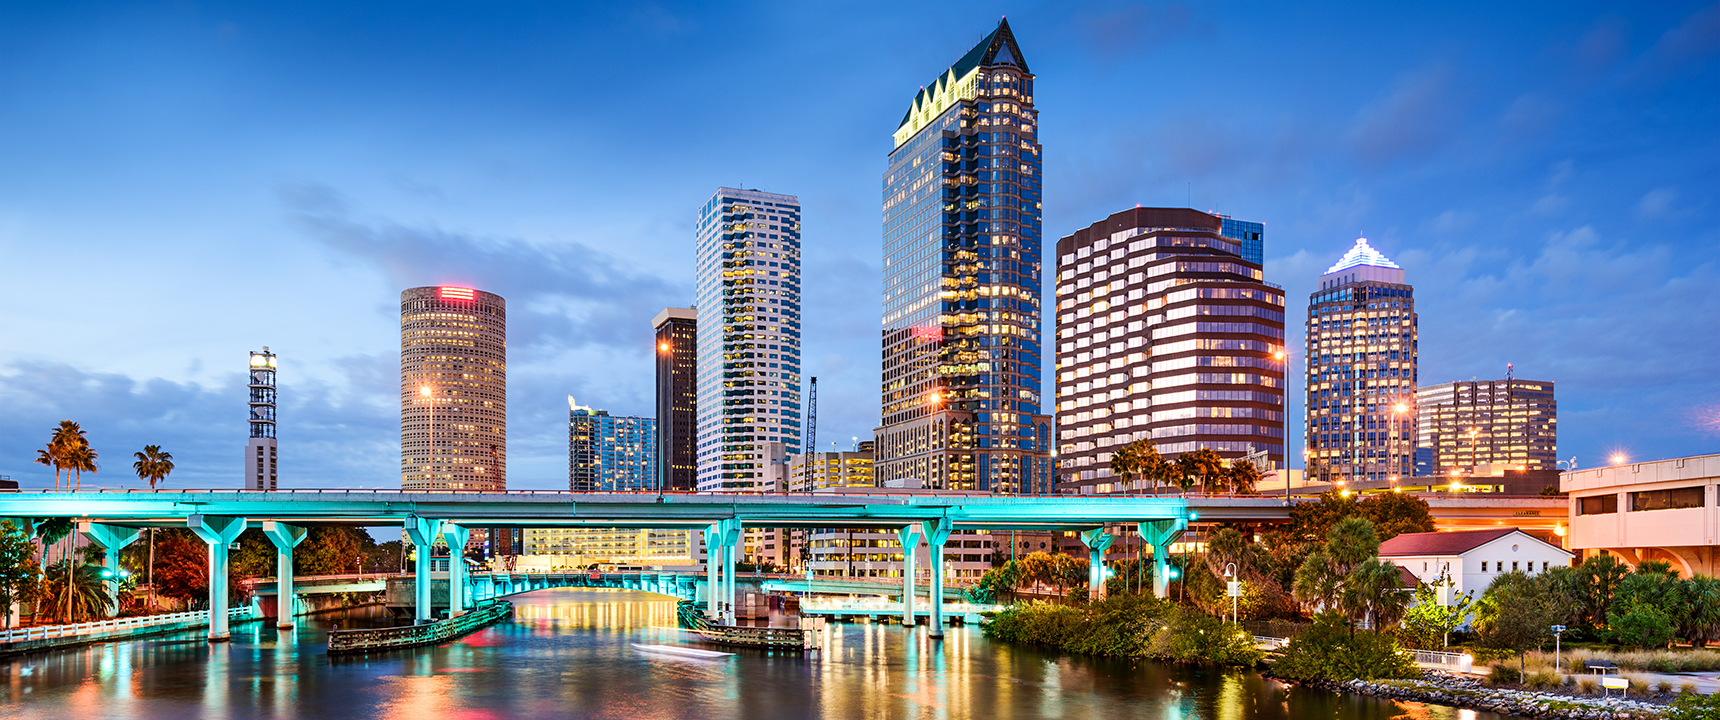 Photo of downtown Tampa, Florida.